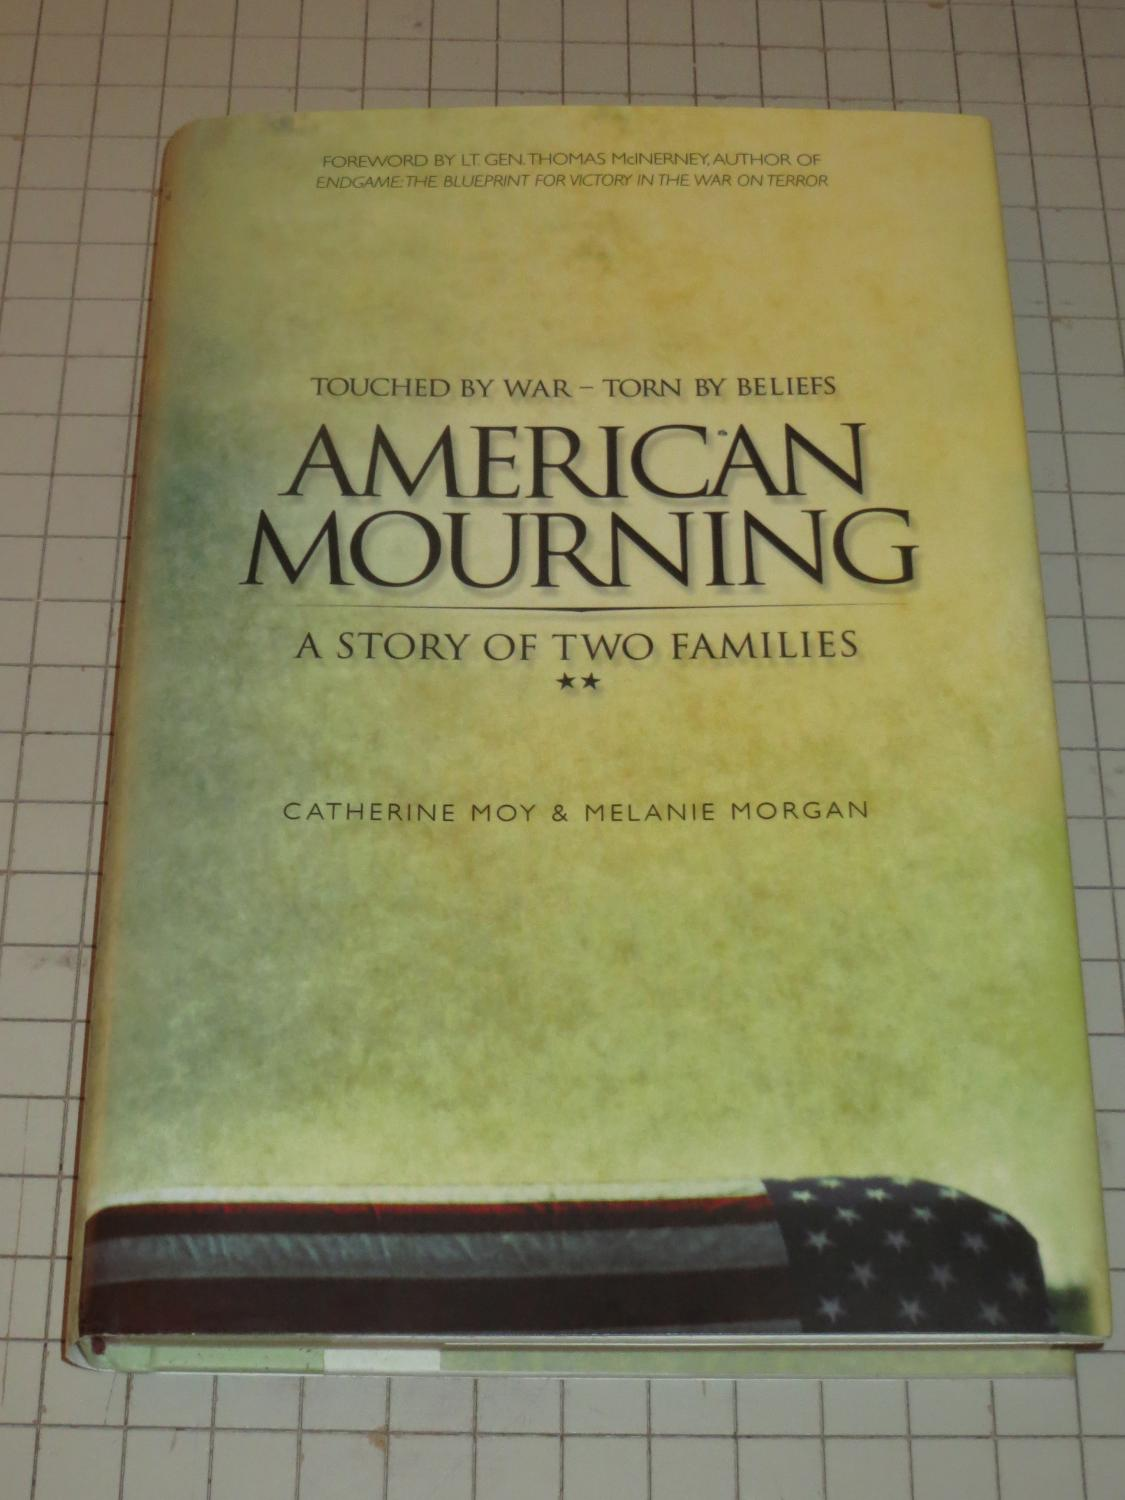 American mourning the intimate story of two families joined by american mourning the intimate story of two families joined by war torn by malvernweather Gallery